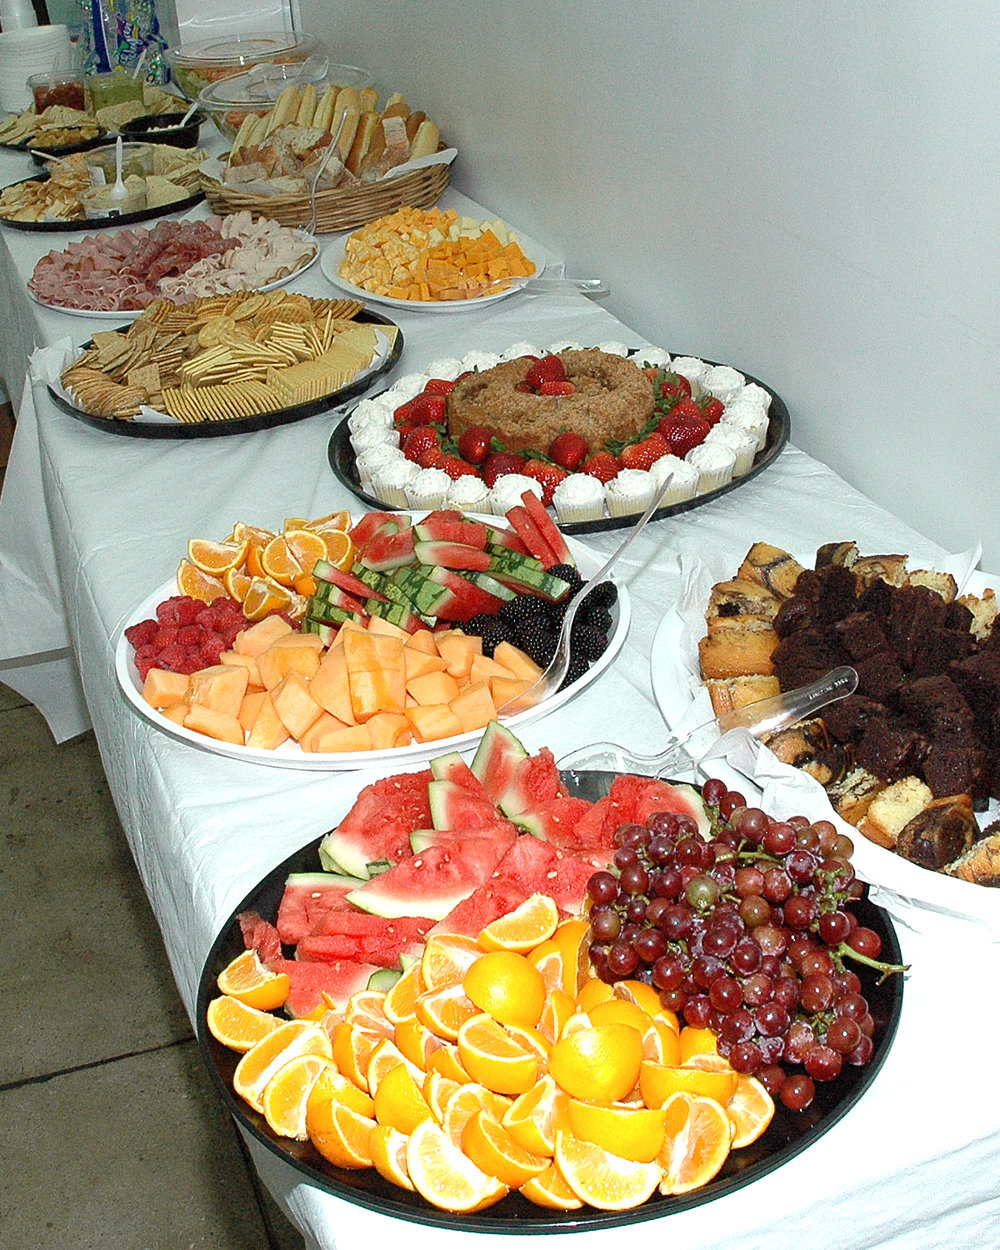 Food a-plenty for the attendees